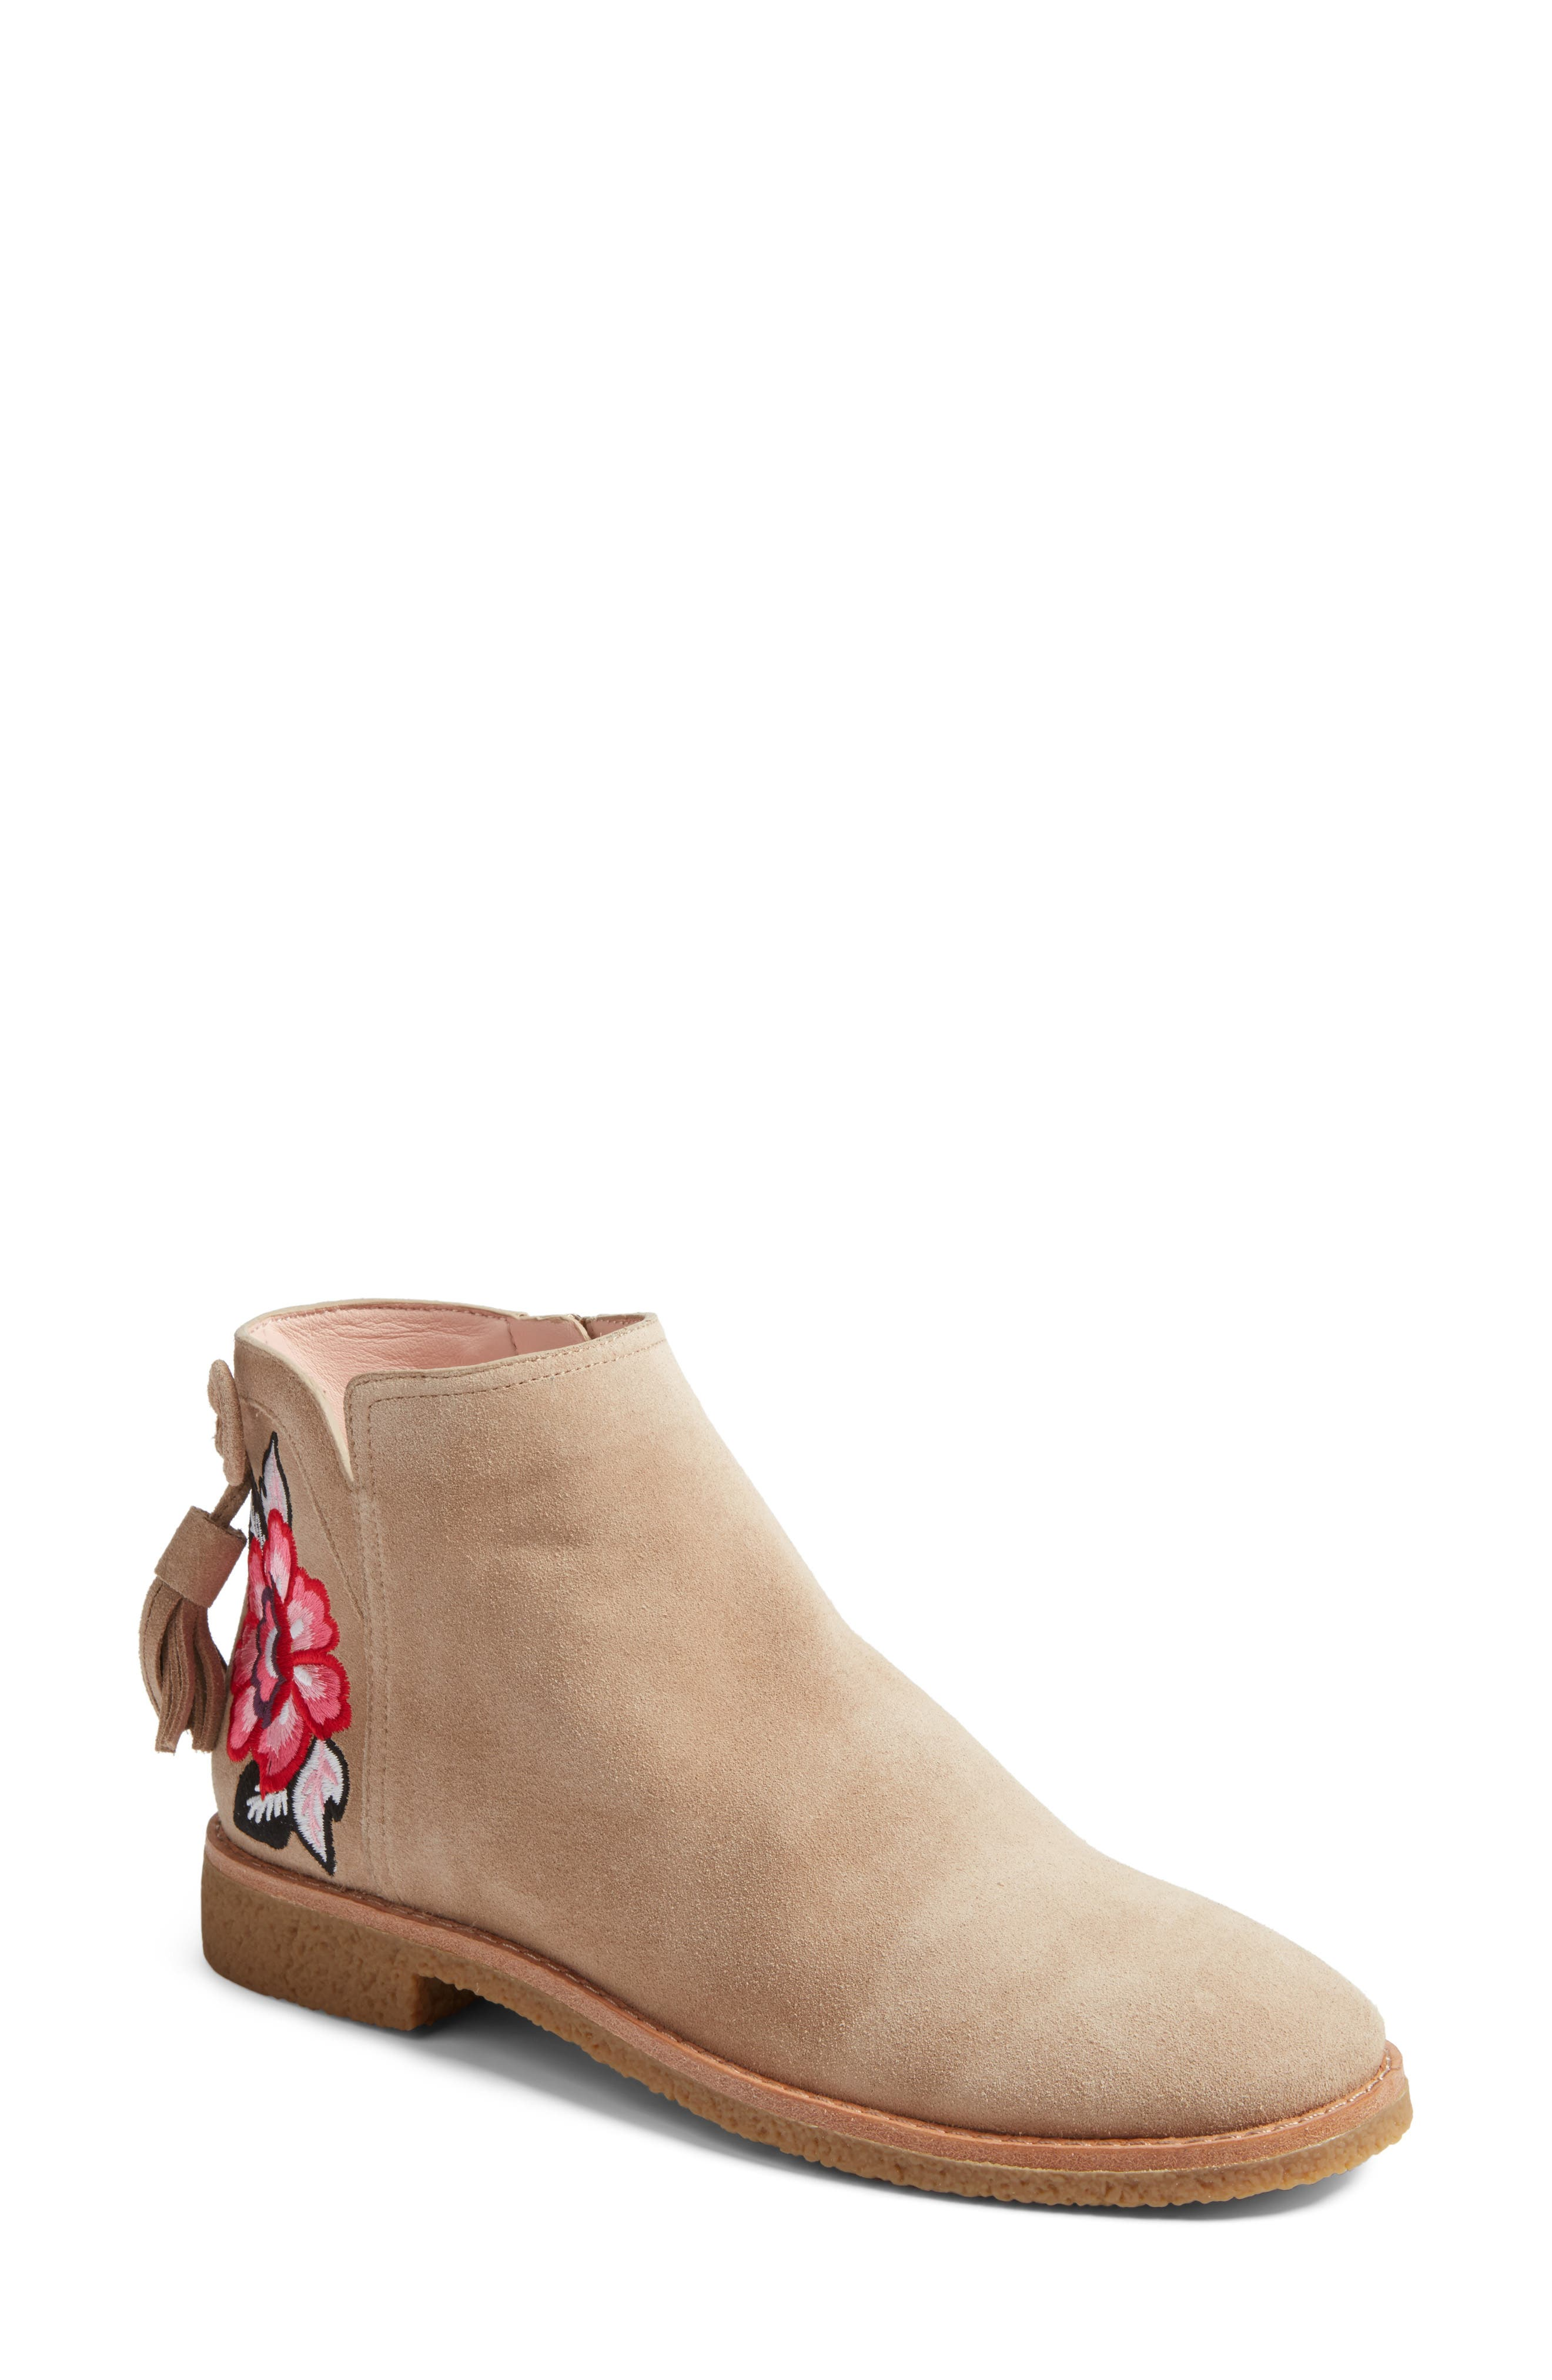 belleville bootie,                             Main thumbnail 1, color,                             Desert Cow Suede